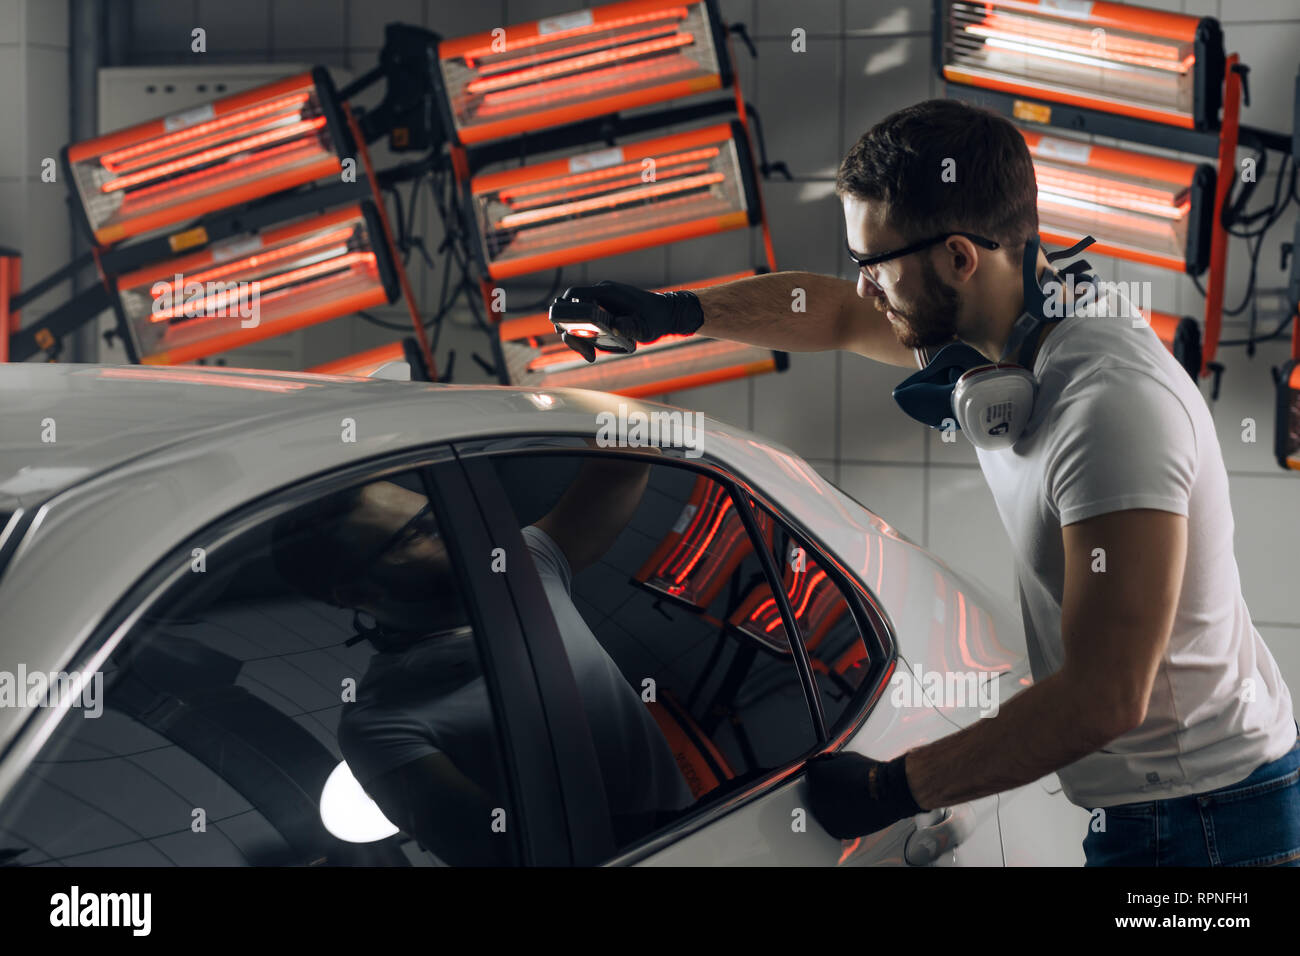 guy using a car paint thickness checker at workplace at the garage. close up photo Stock Photo